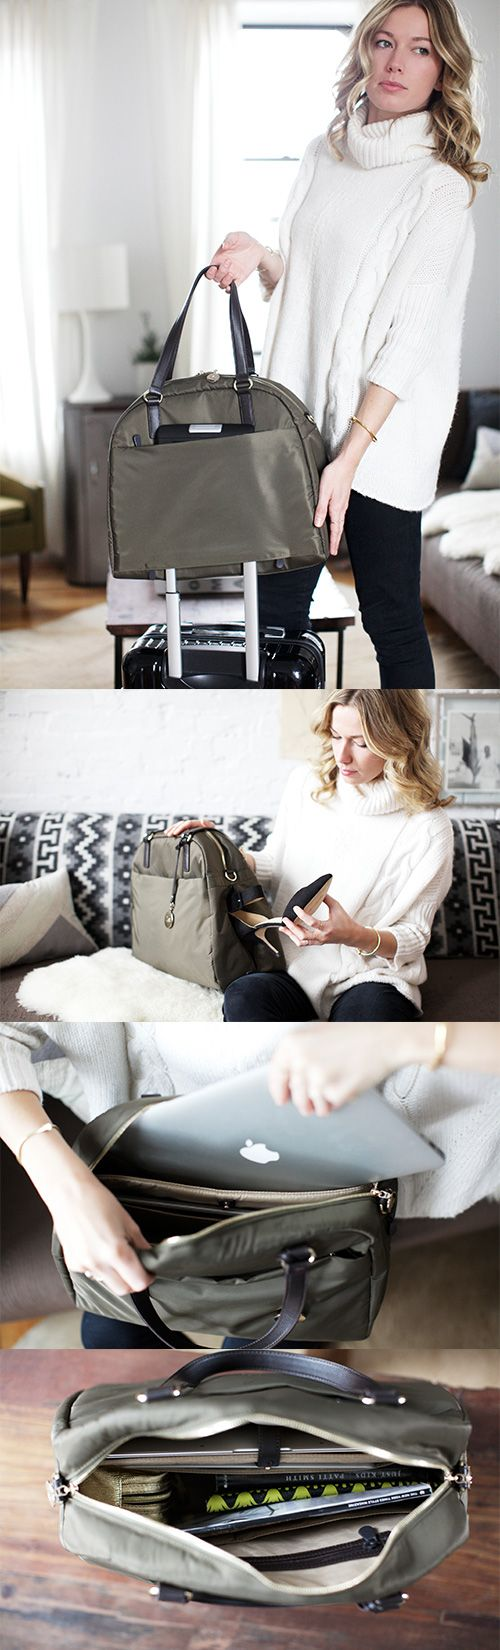 wholesale gold jewelry   The OMG    lightweight travel bag tech friendly laptop tote and stylish gym bag Designed by Lo amp Sons  loandsons com  loandsons